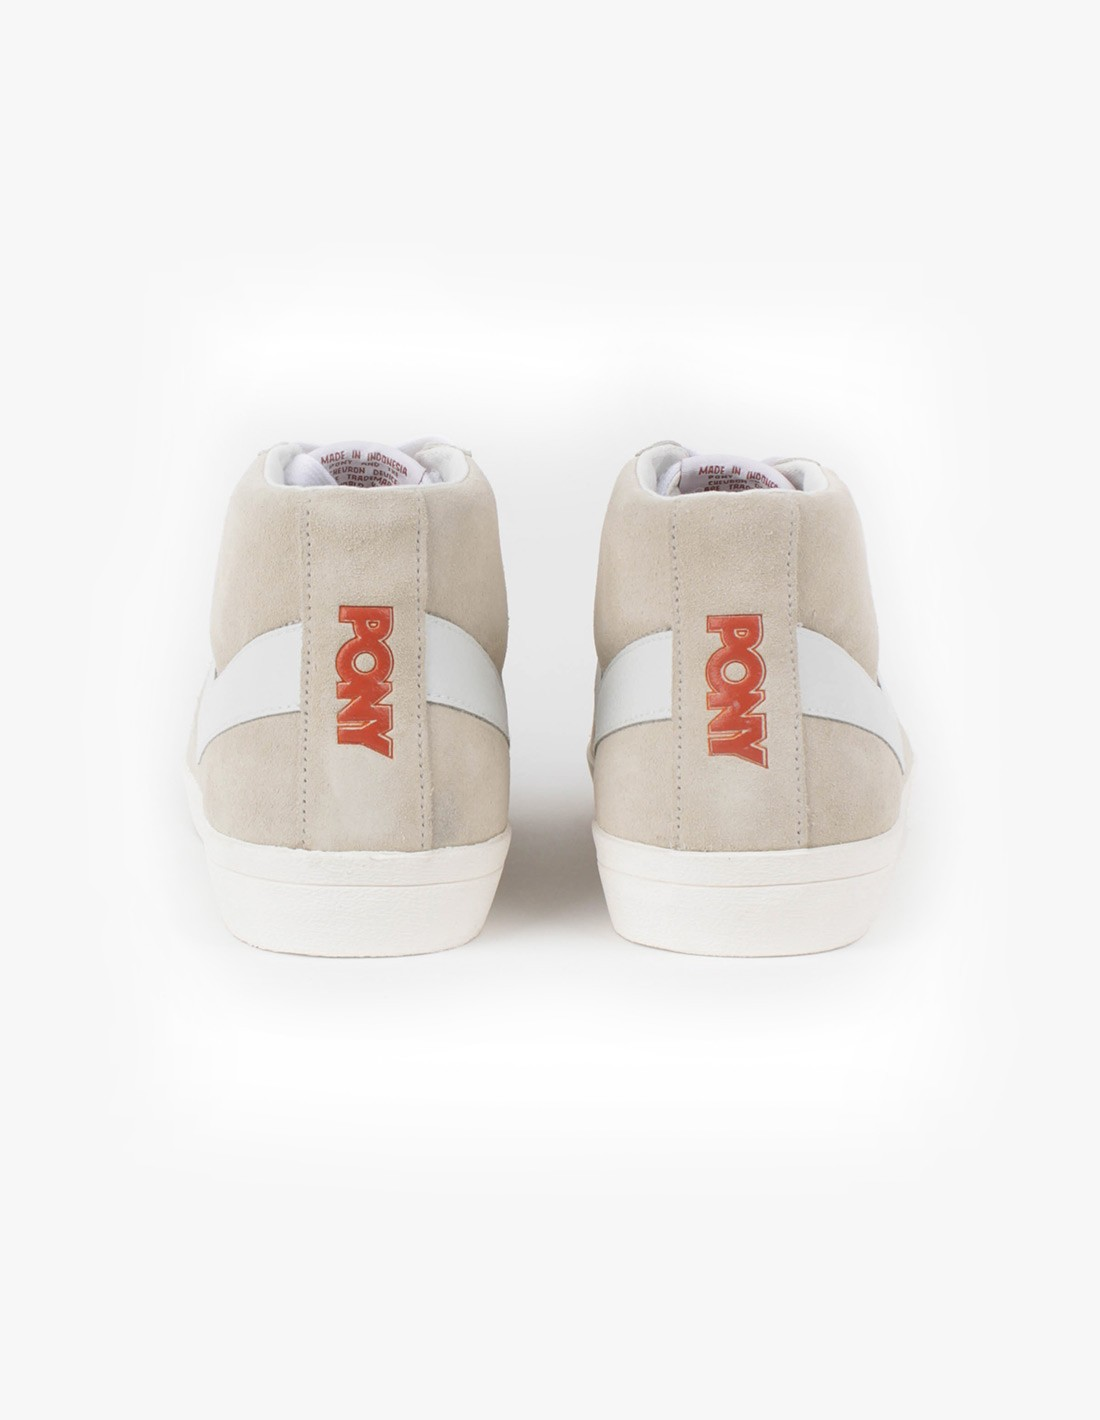 PONY Topstar Suede Hi in Off White